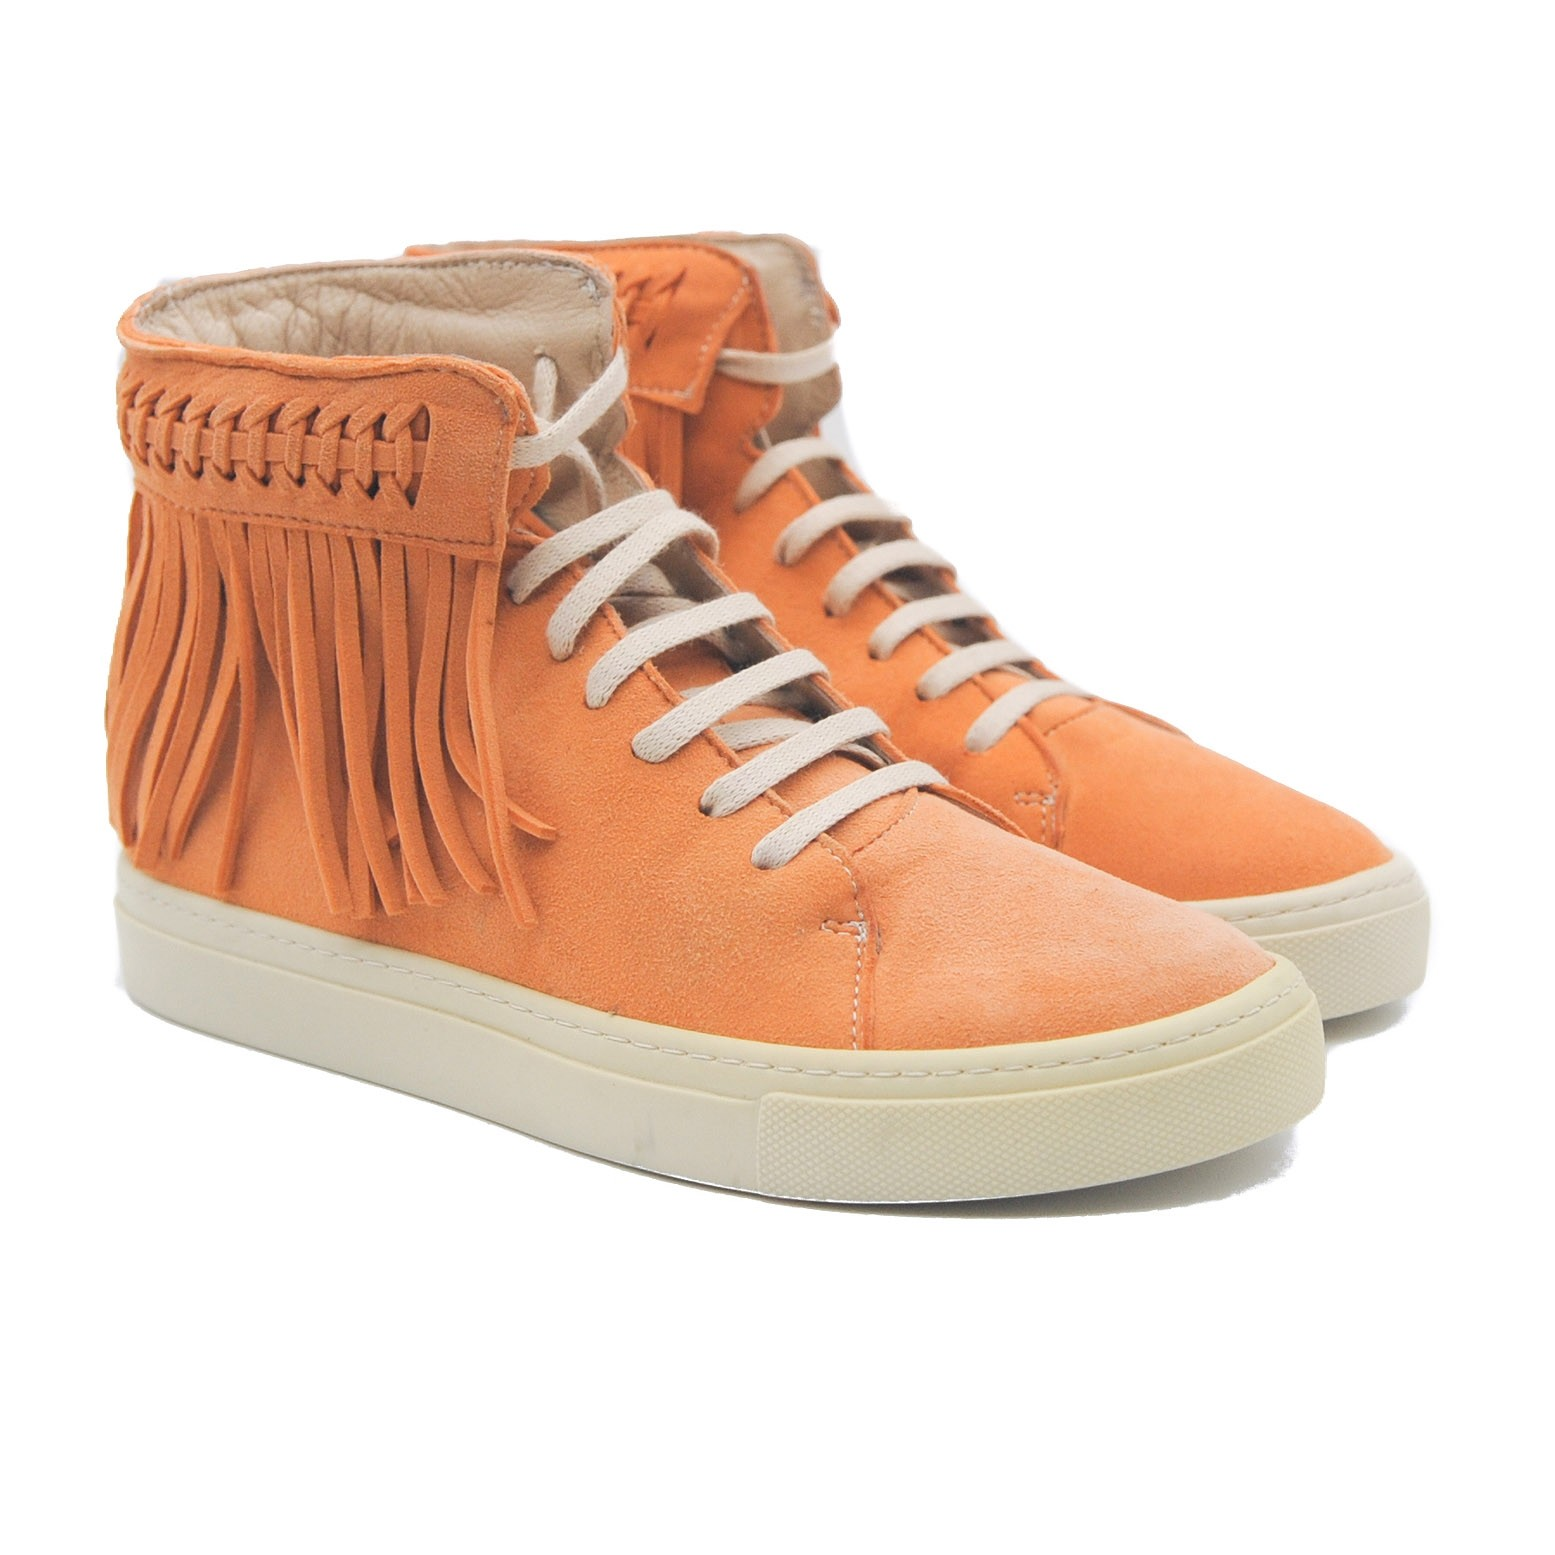 Art Goya Mango Colour Lace up Suede High Skater Boot with Suede Fringed Trim